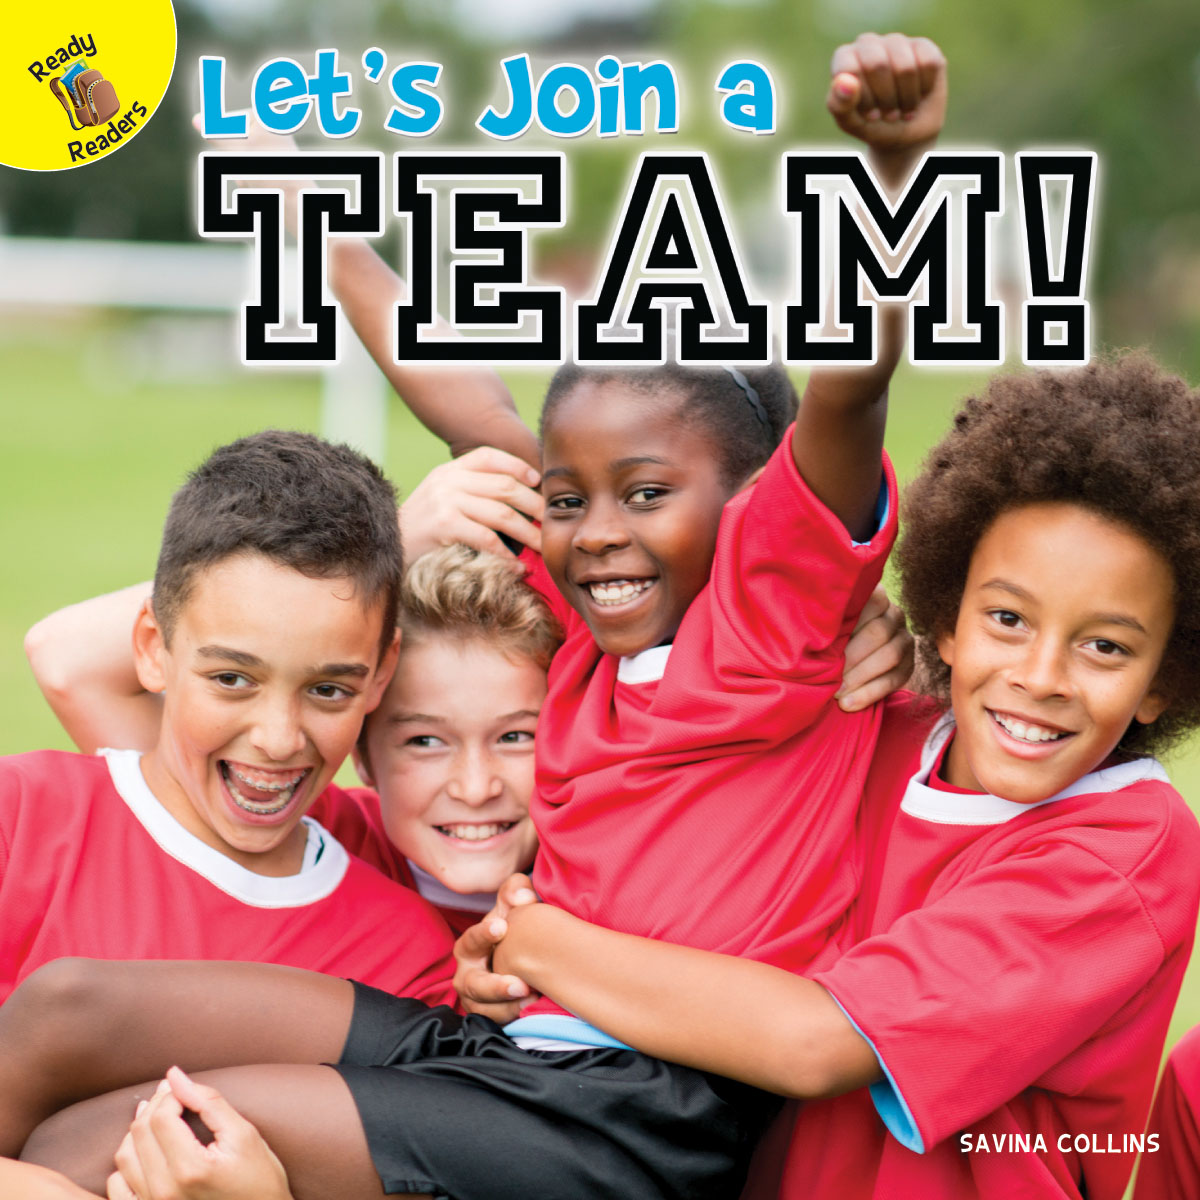 Let's Join a Team!